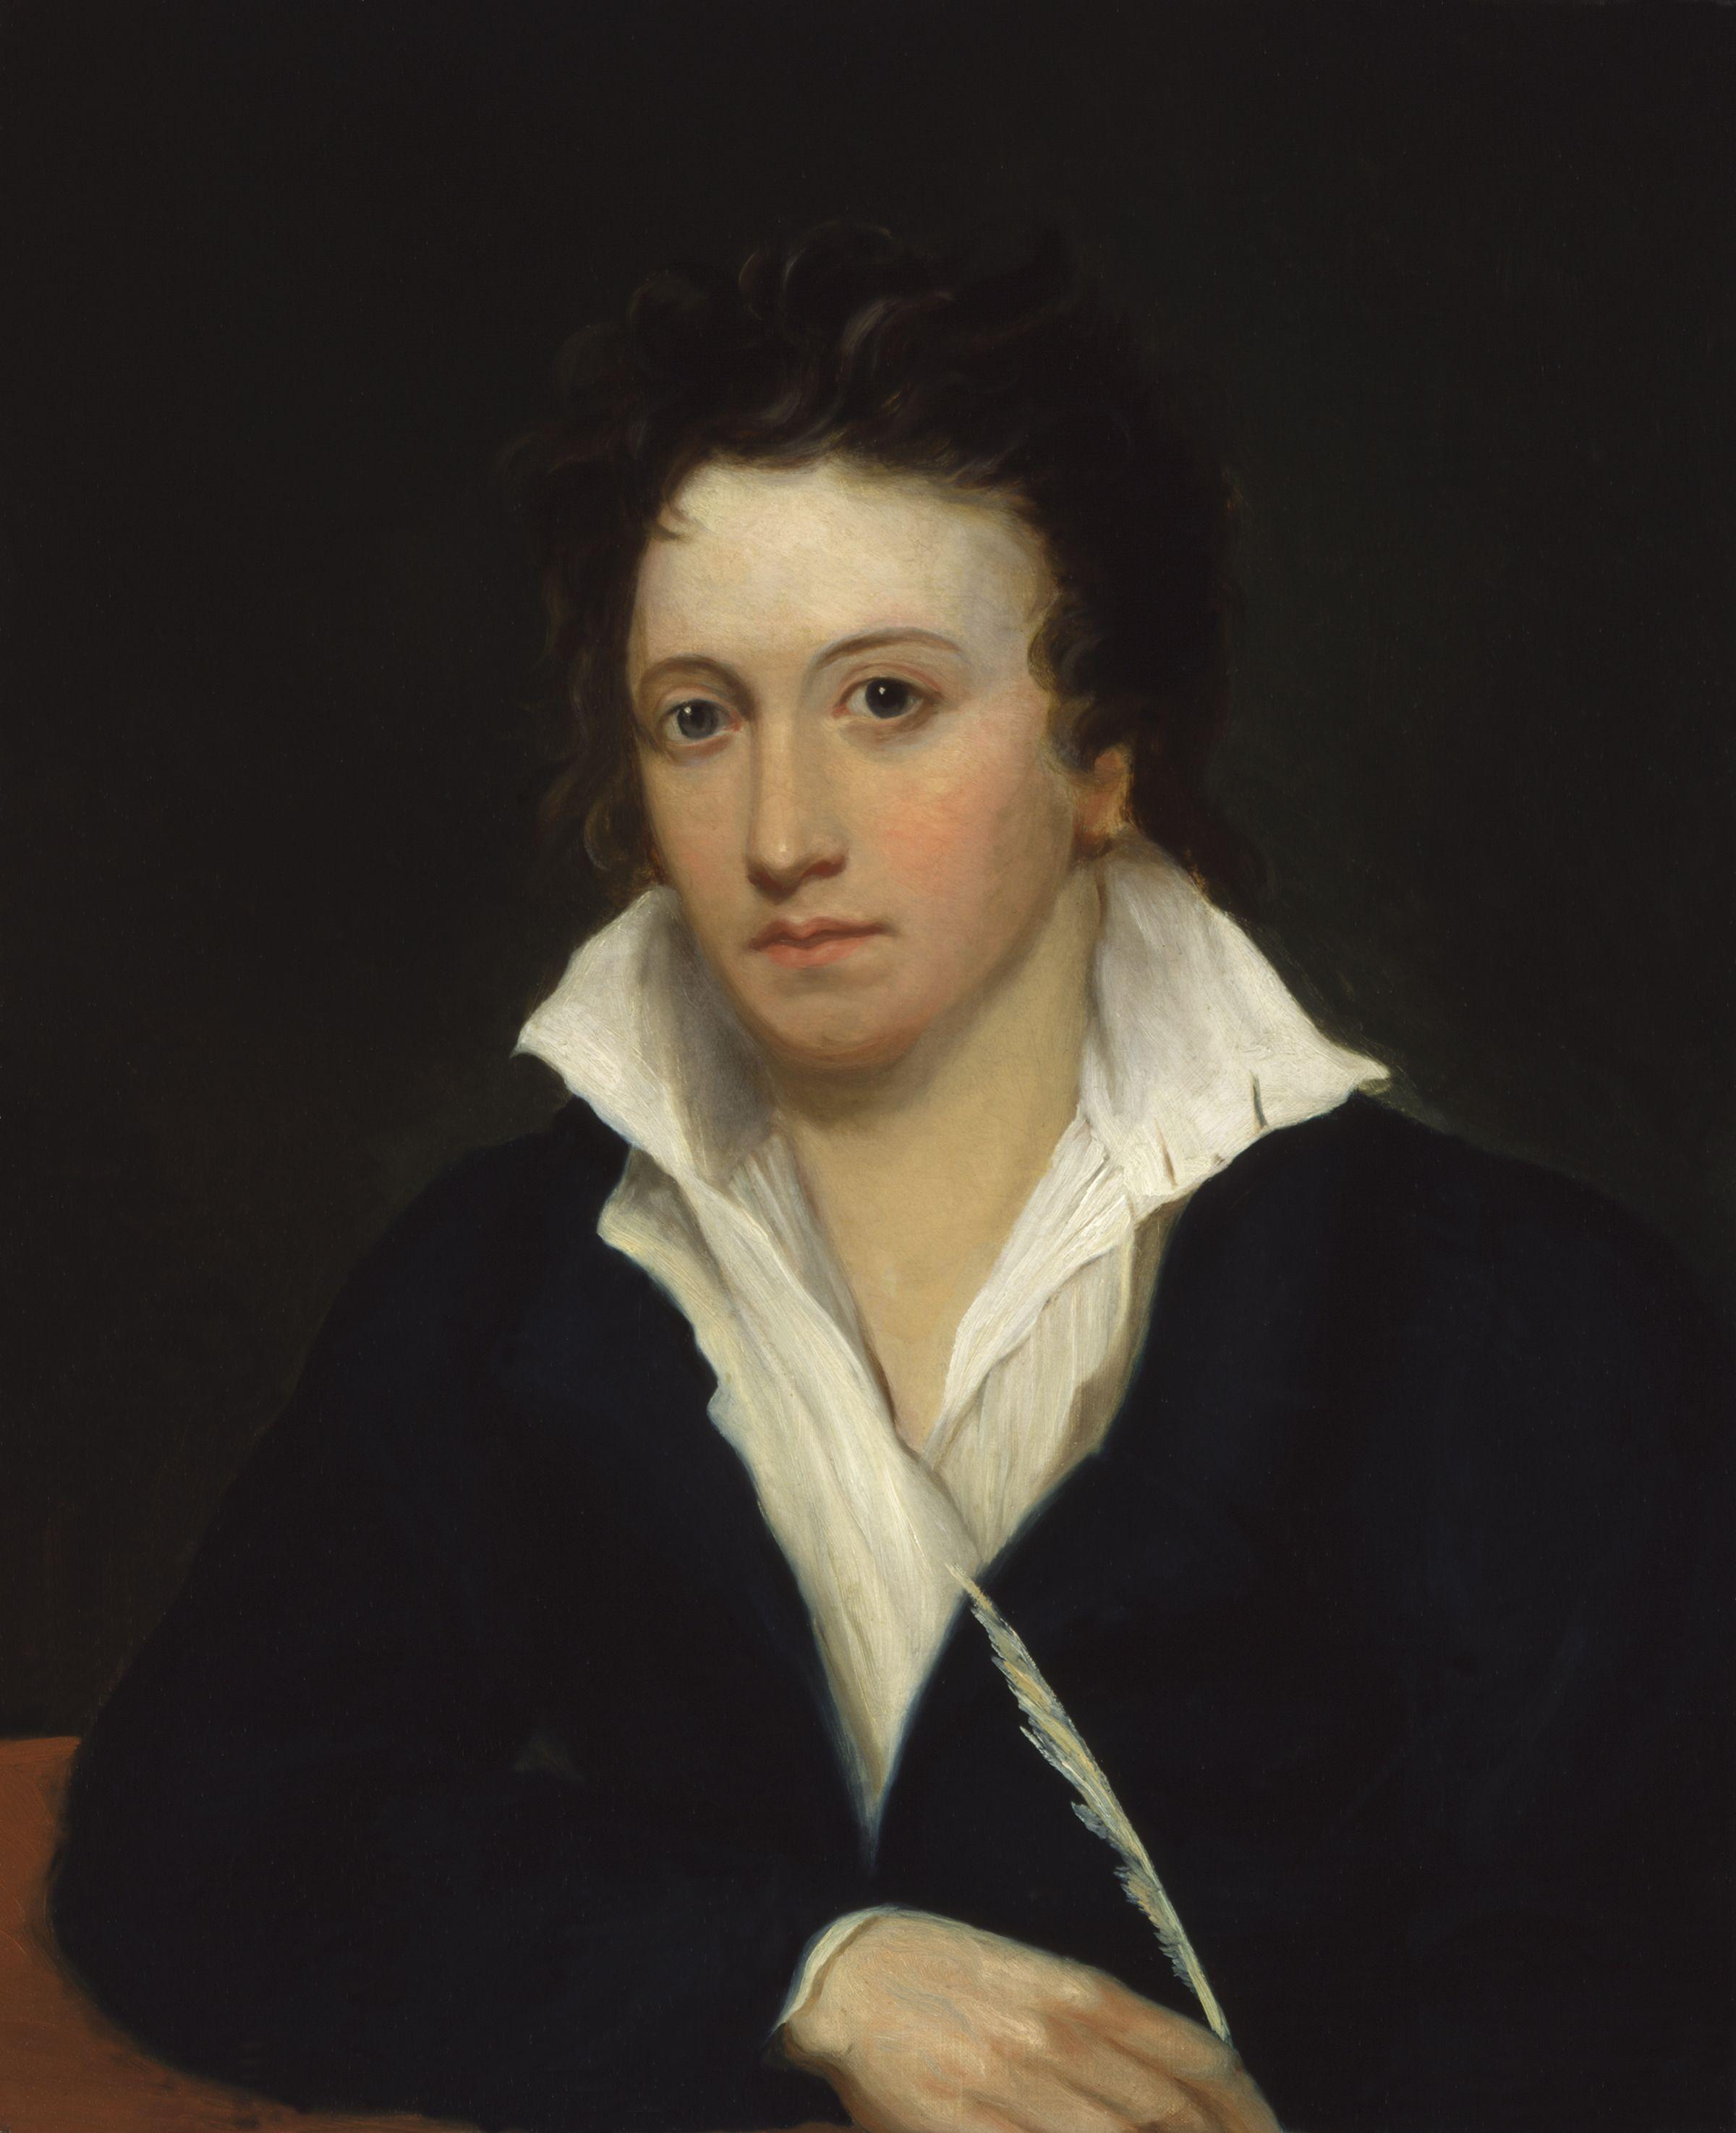 Percy Bysshe Shelley (1792-1822) [https://upload.wikimedia.org]